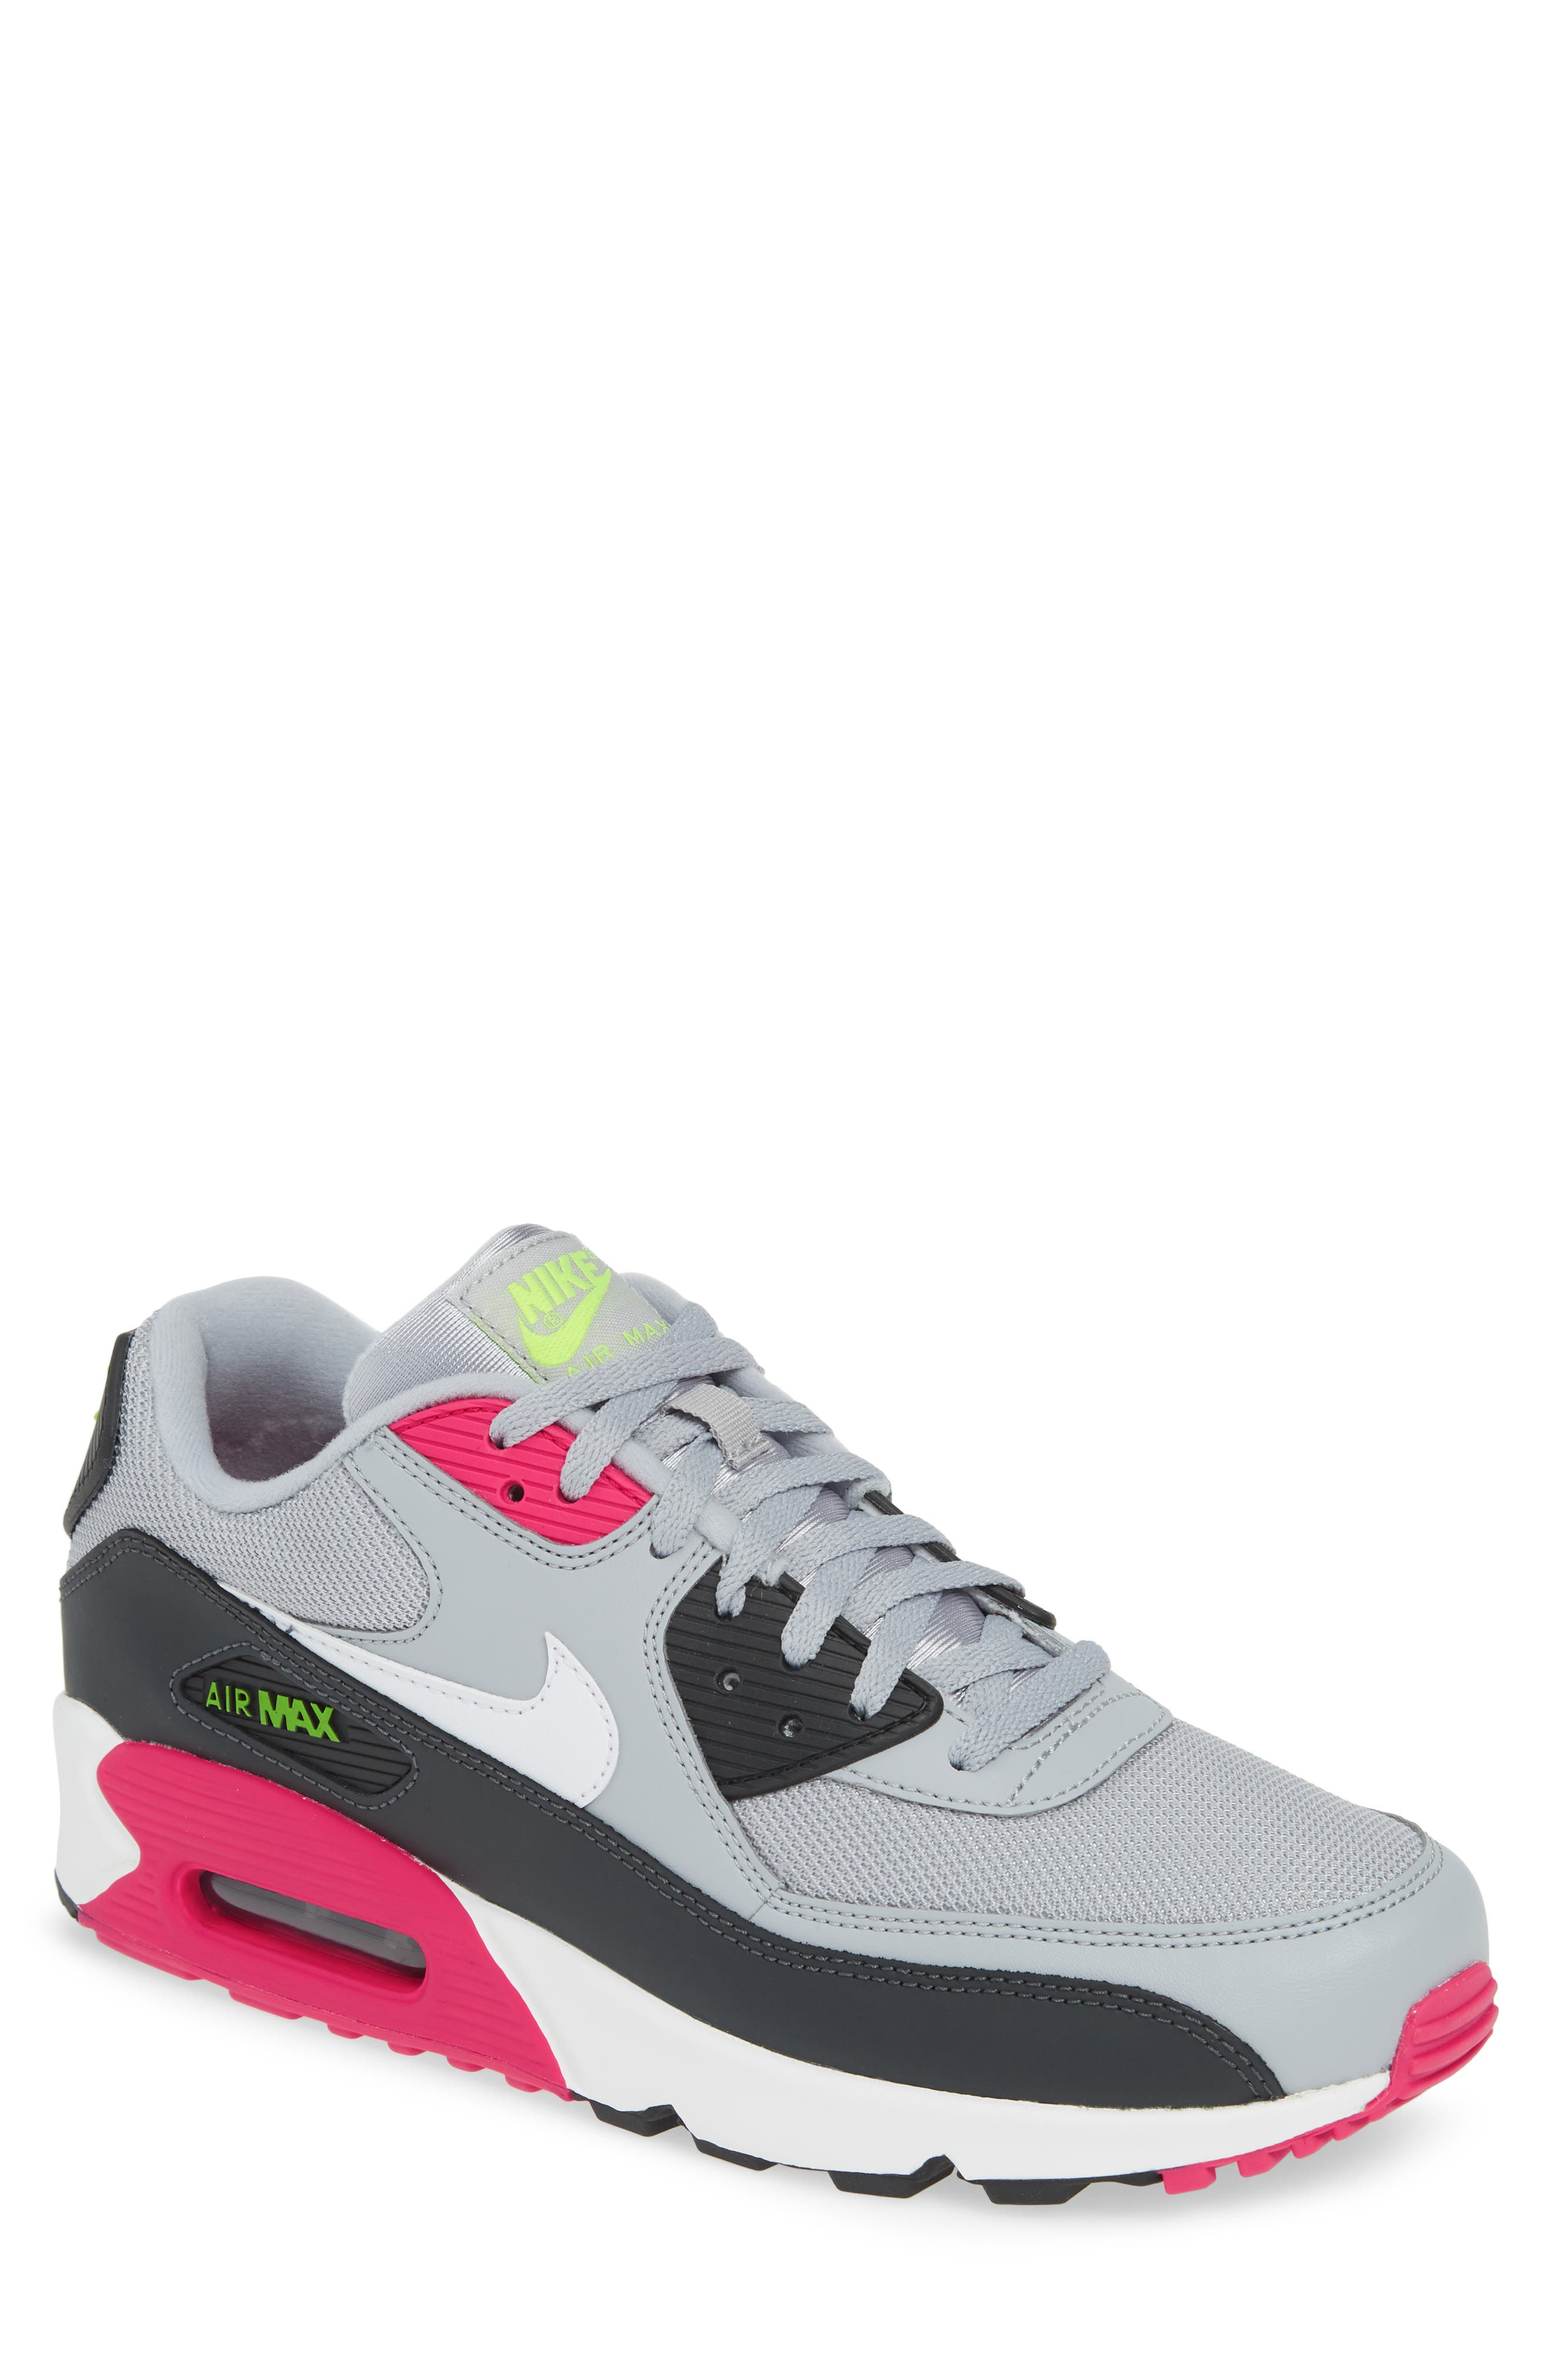 Air Max 90 Essential Sneaker, Main, color, WOLF GREY/ WHITE/ PINK